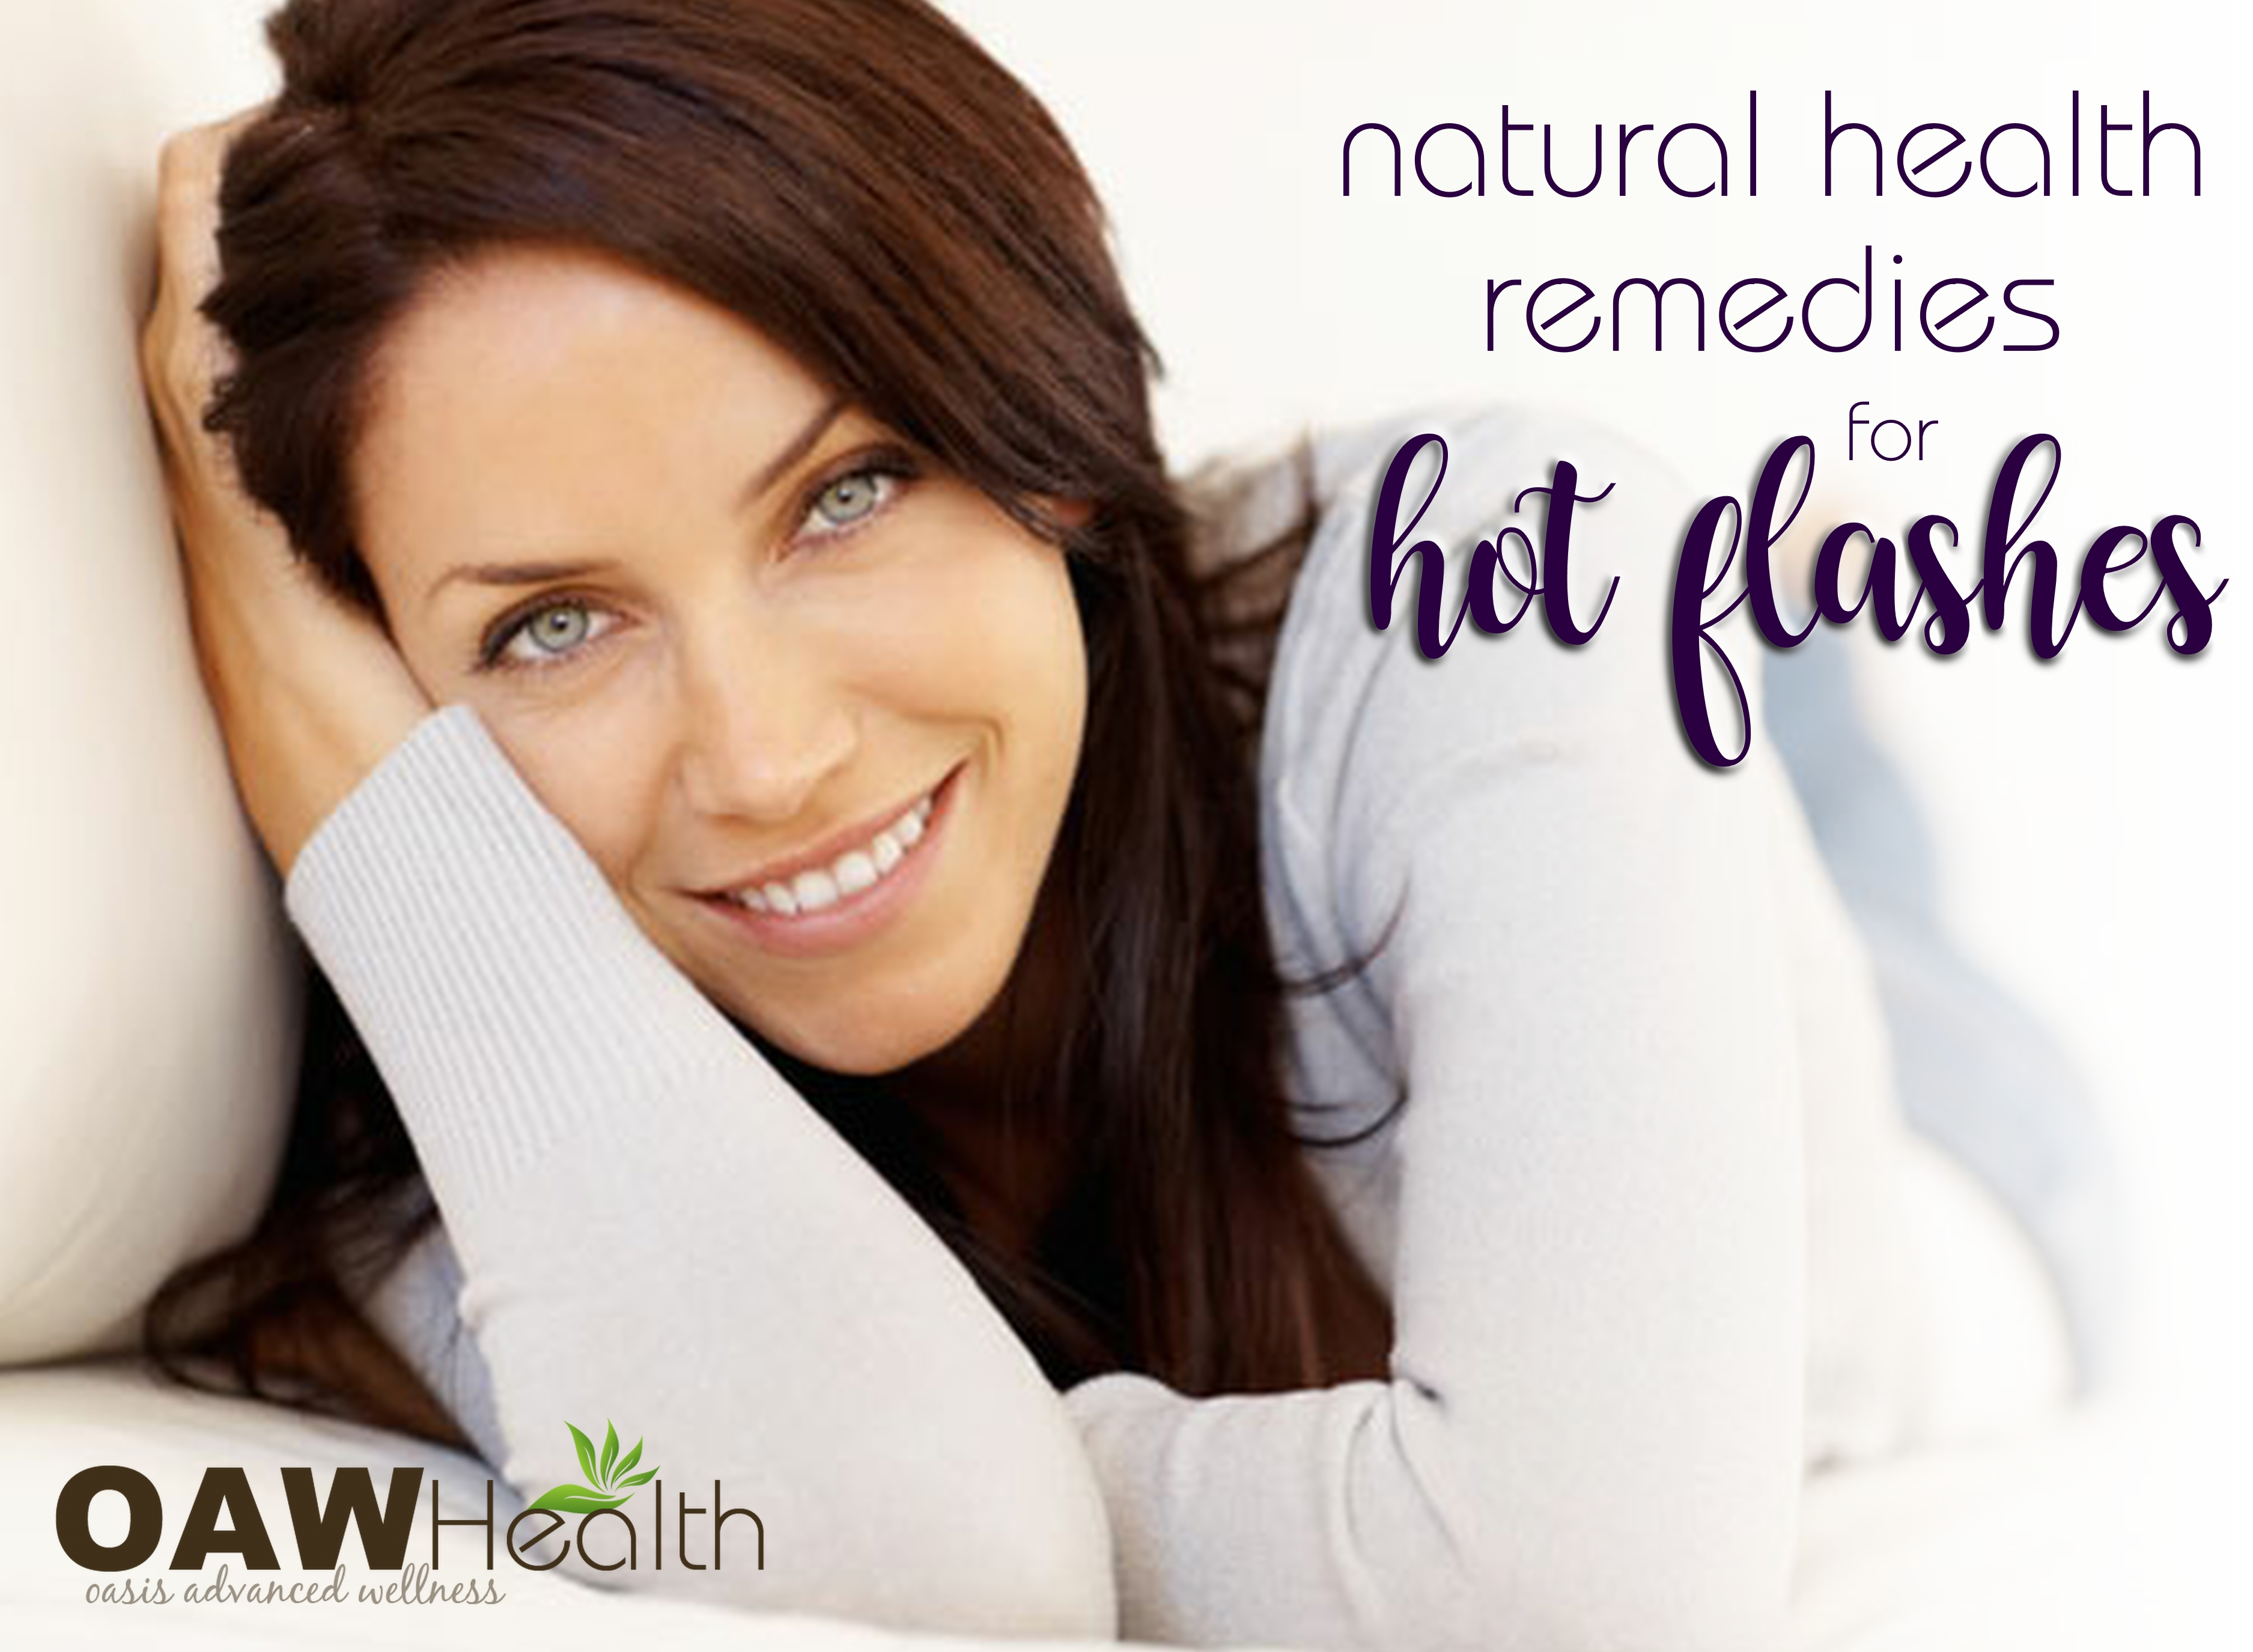 30 Natural Health Remedies for Hot Flashes